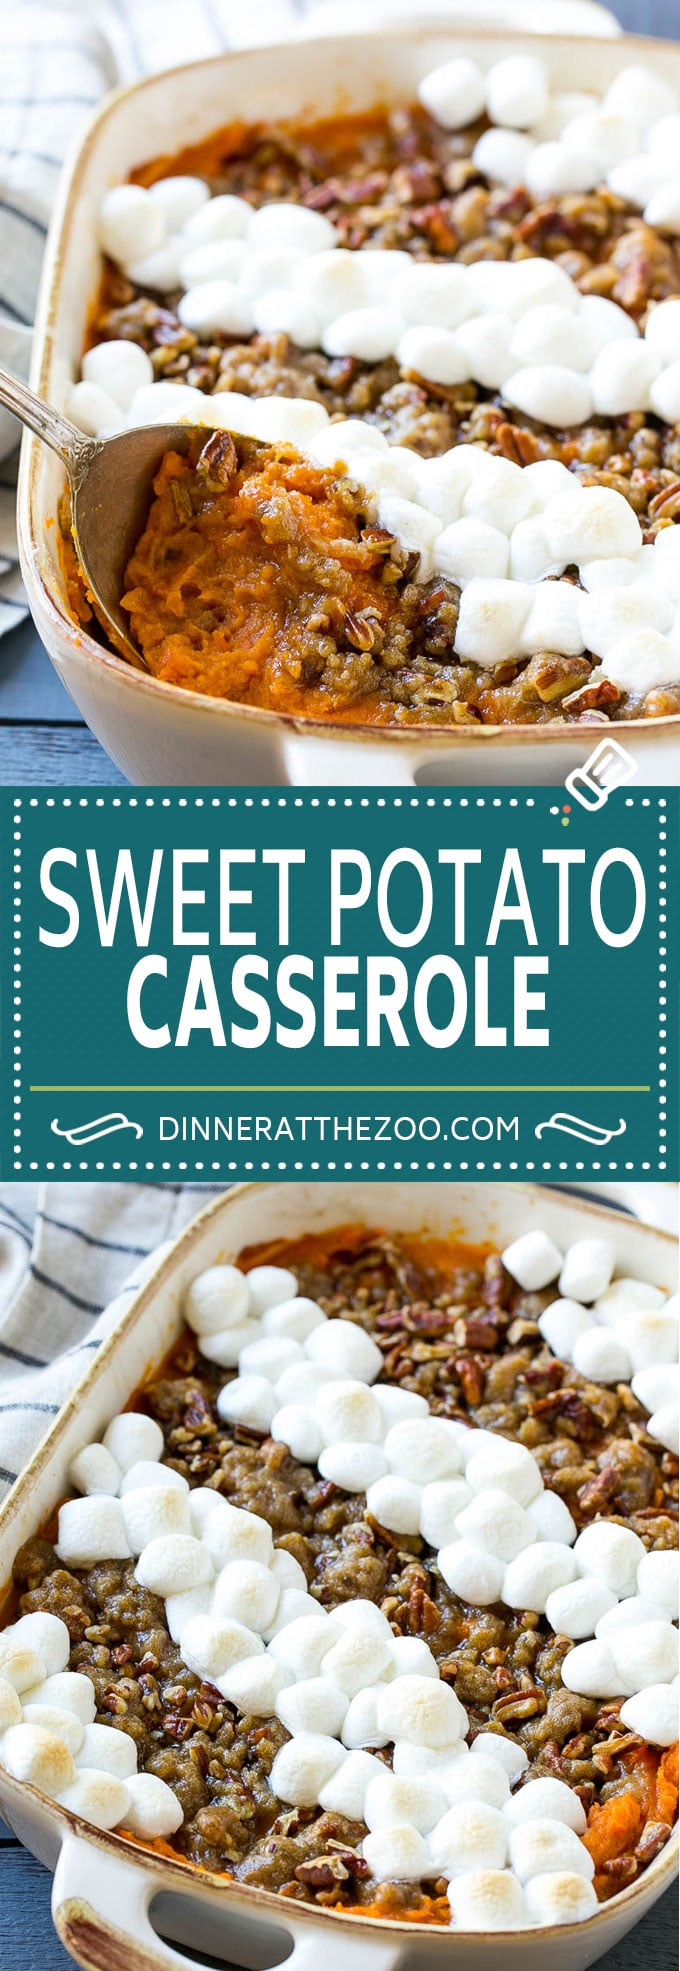 Sweet Potato Casserole Recipe | Sweet Potato Casserole with Marshmallows #sweetpotato #casserole #thanksgiving #dinner #dinneratthezoo #sidedish #fall